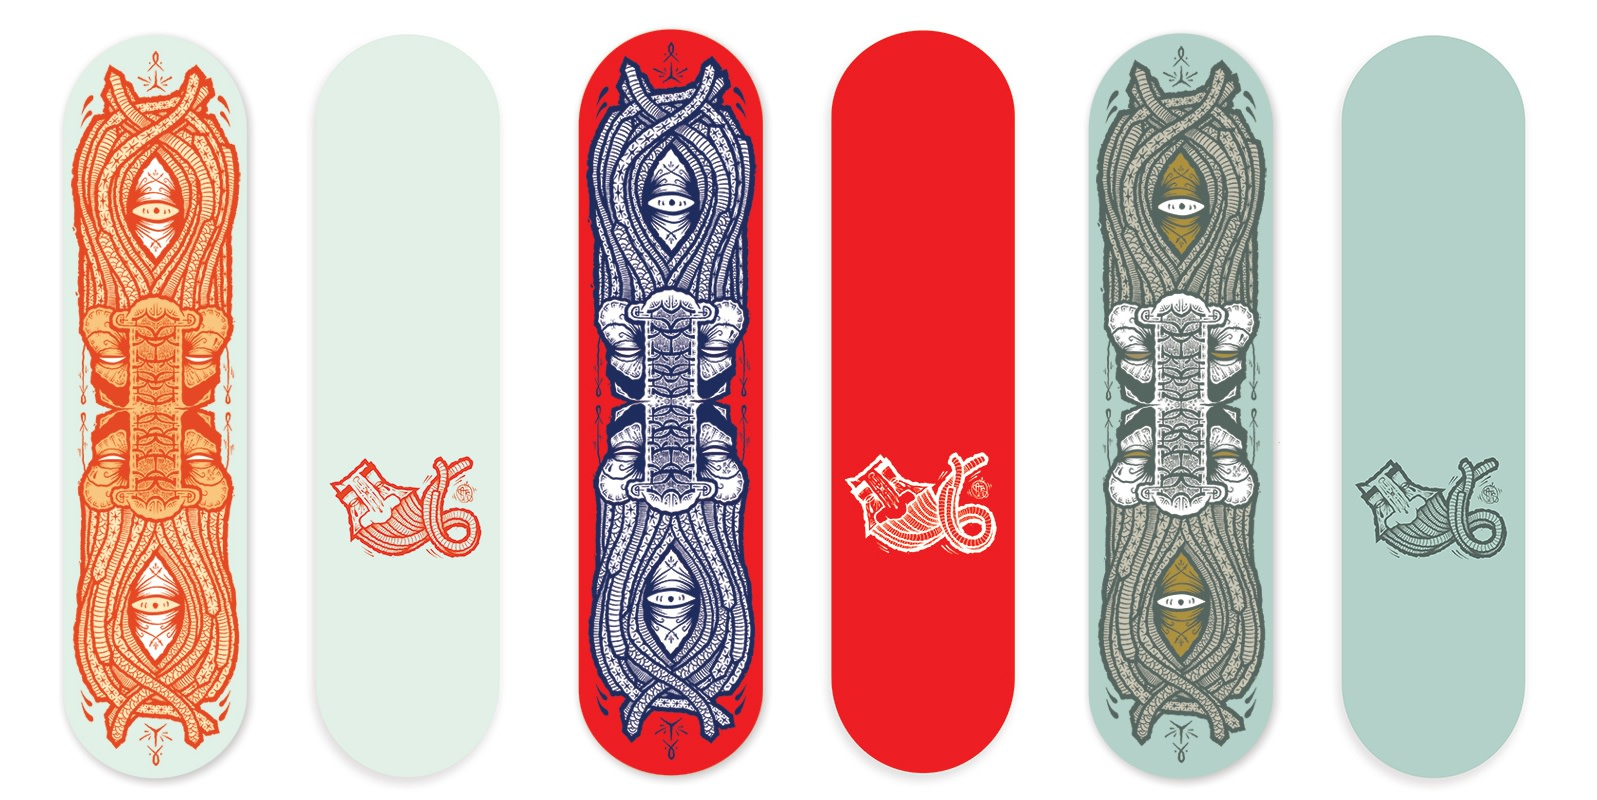 Skateboard decks by GATS